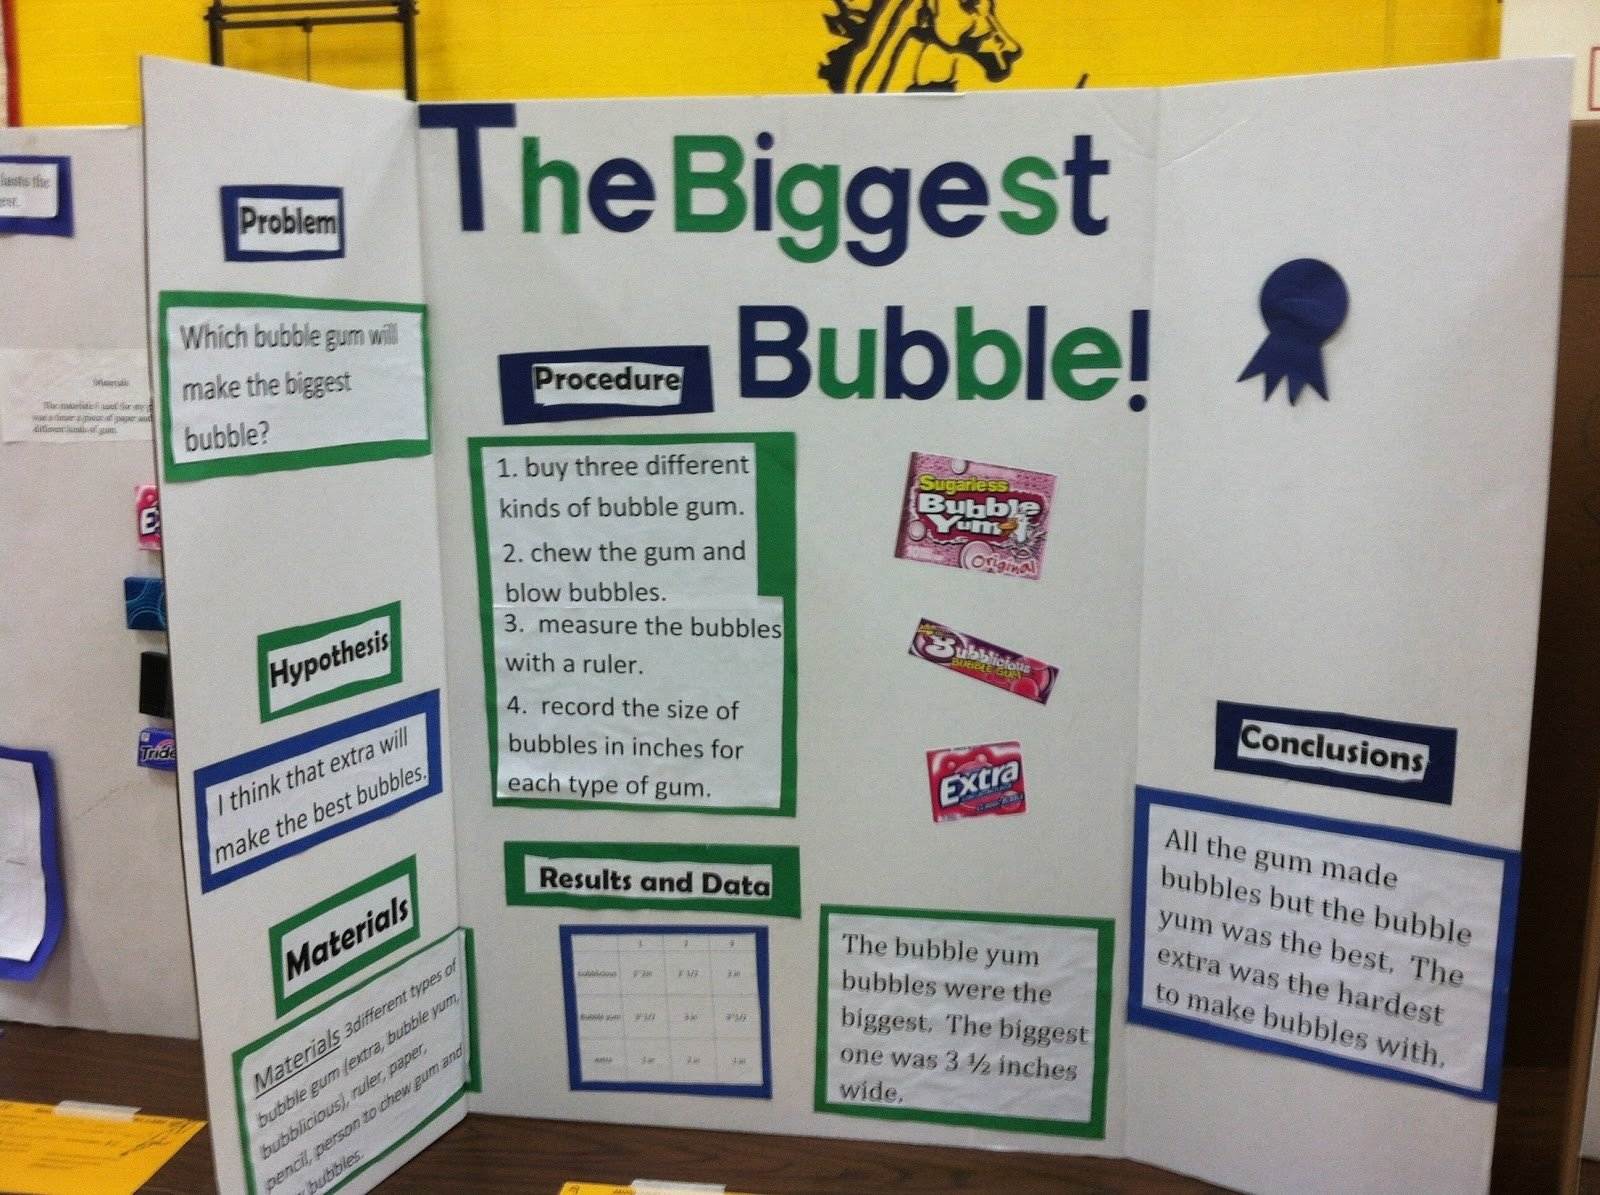 10 Spectacular Science Projects Ideas For 5Th Graders easy 7th grade science fair projects coursework help 7 2021